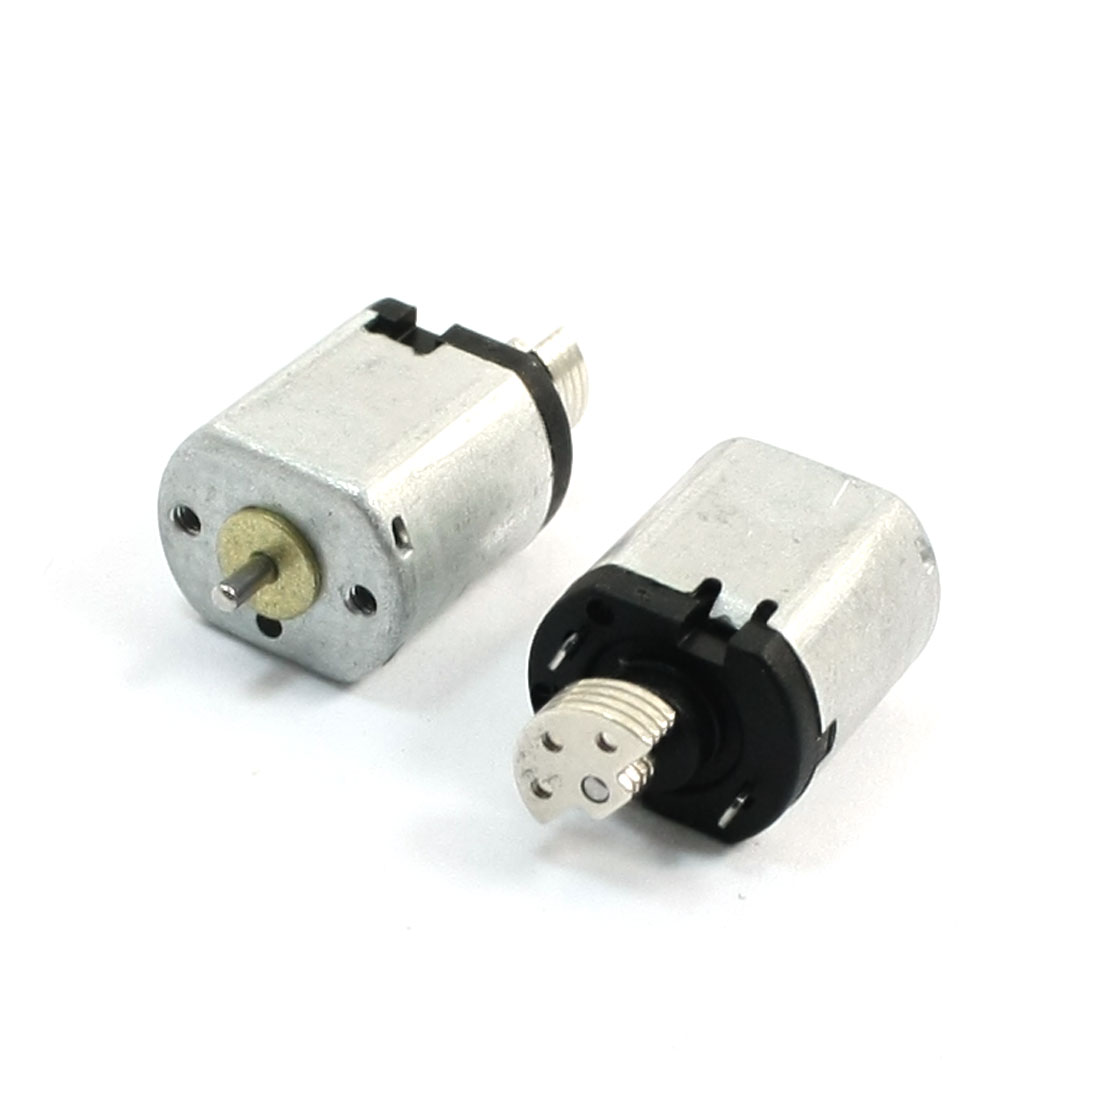 2pcs-18-x-1mm-Shaft-DC-3V-14000RPM-Vibrating-Motor-for-Massager